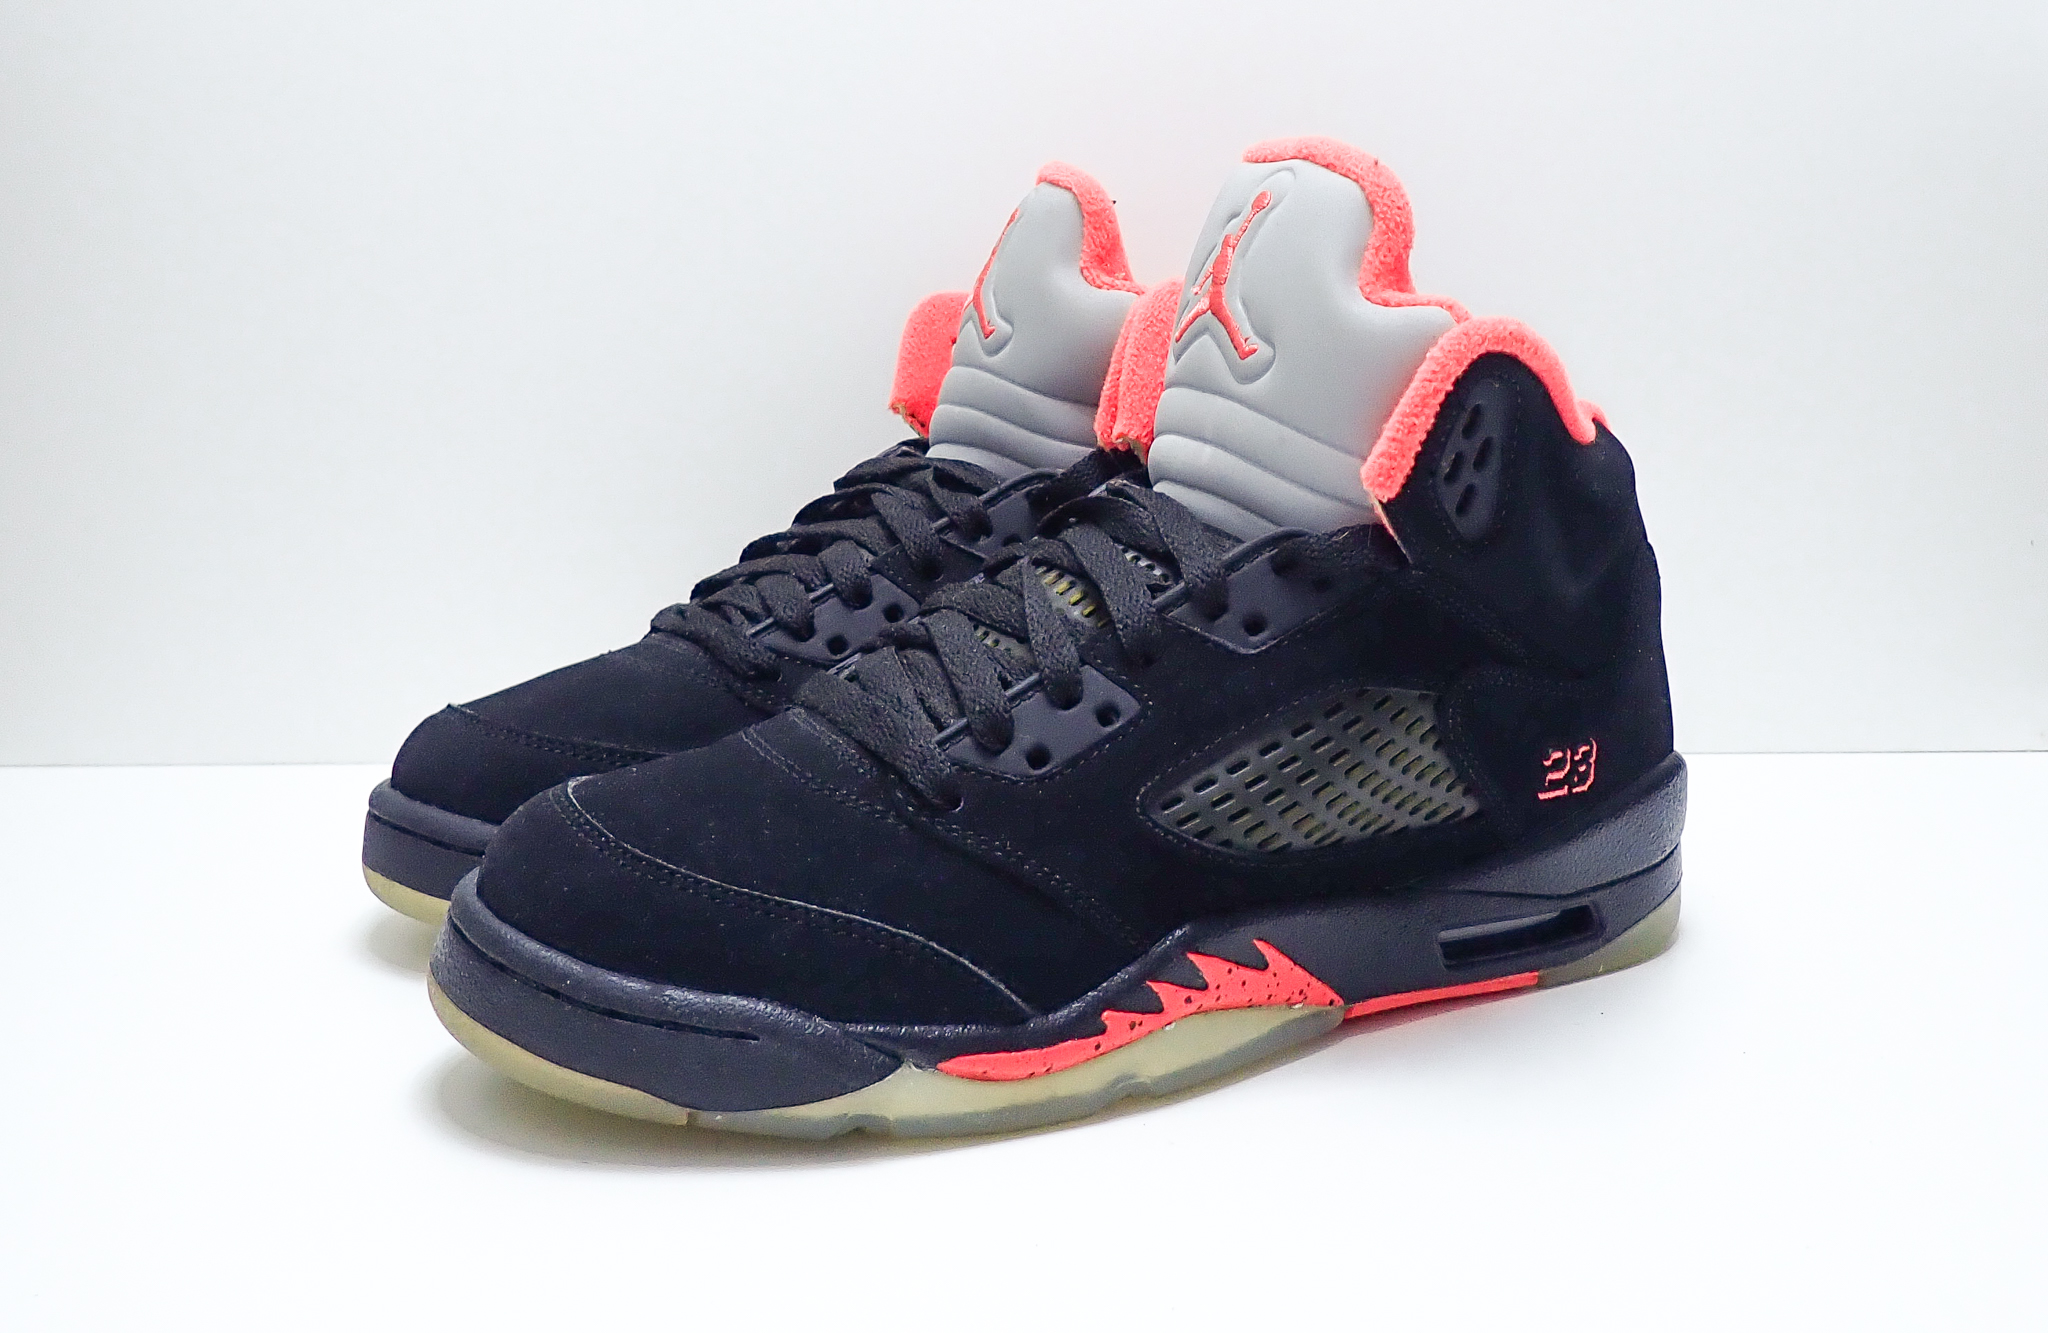 Jordan 5 Retro Black Alarming (GS)